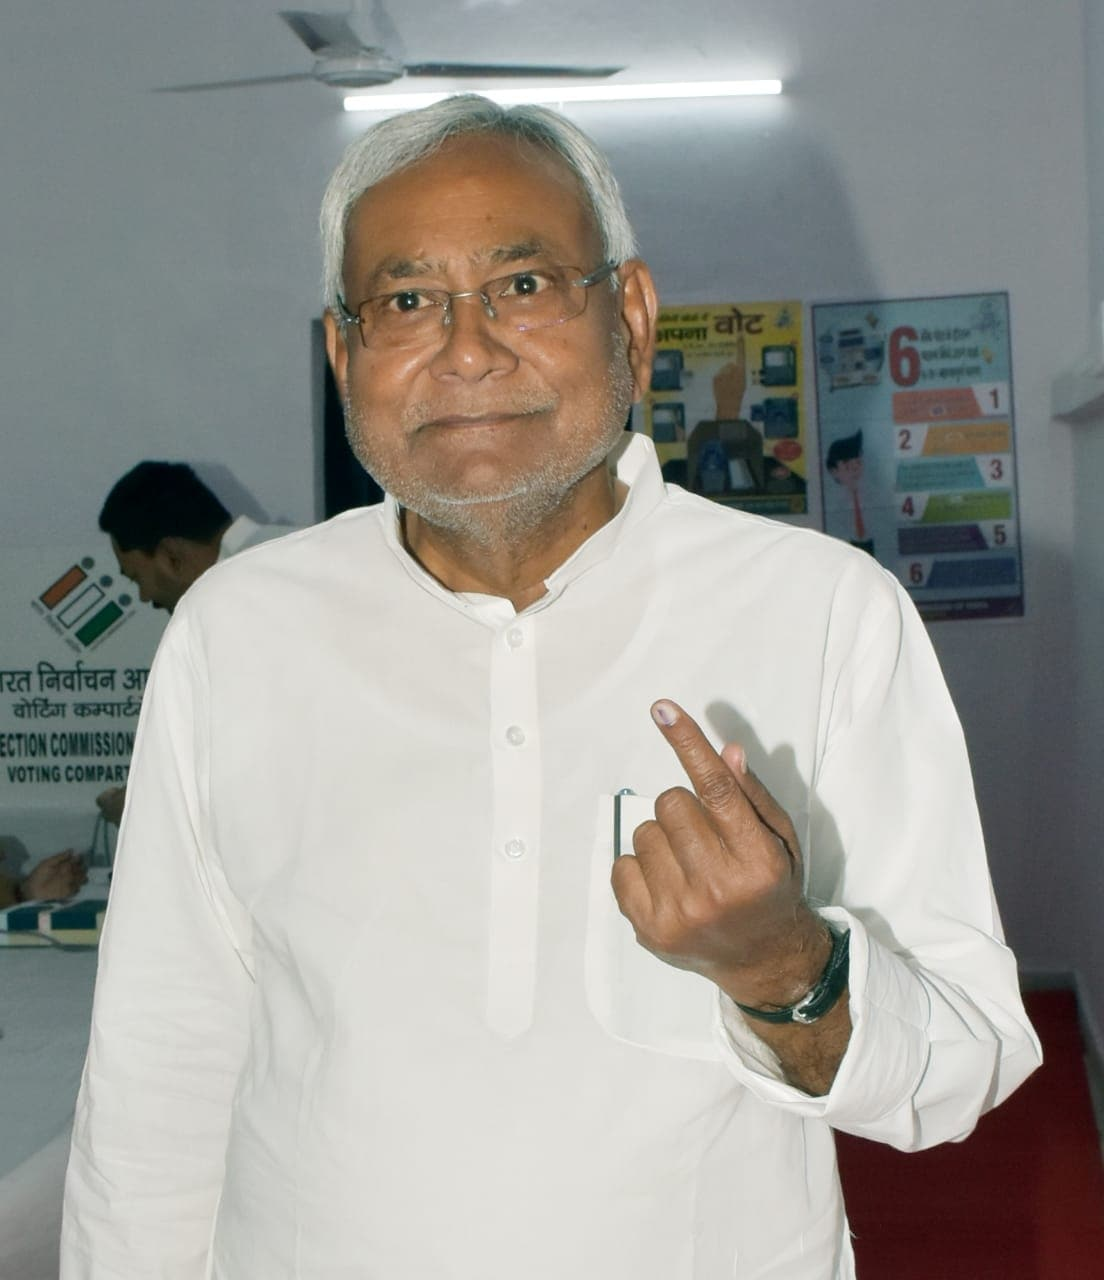 Patna: Bihar Chief Minister Nitish Kumar shows his forefinger marked with indelible ink after casting vote during the seventh and the last phase of 2019 Lok Sabha Elections at a polling booth in Patna on May 19, 2019. (Photo: IANS)